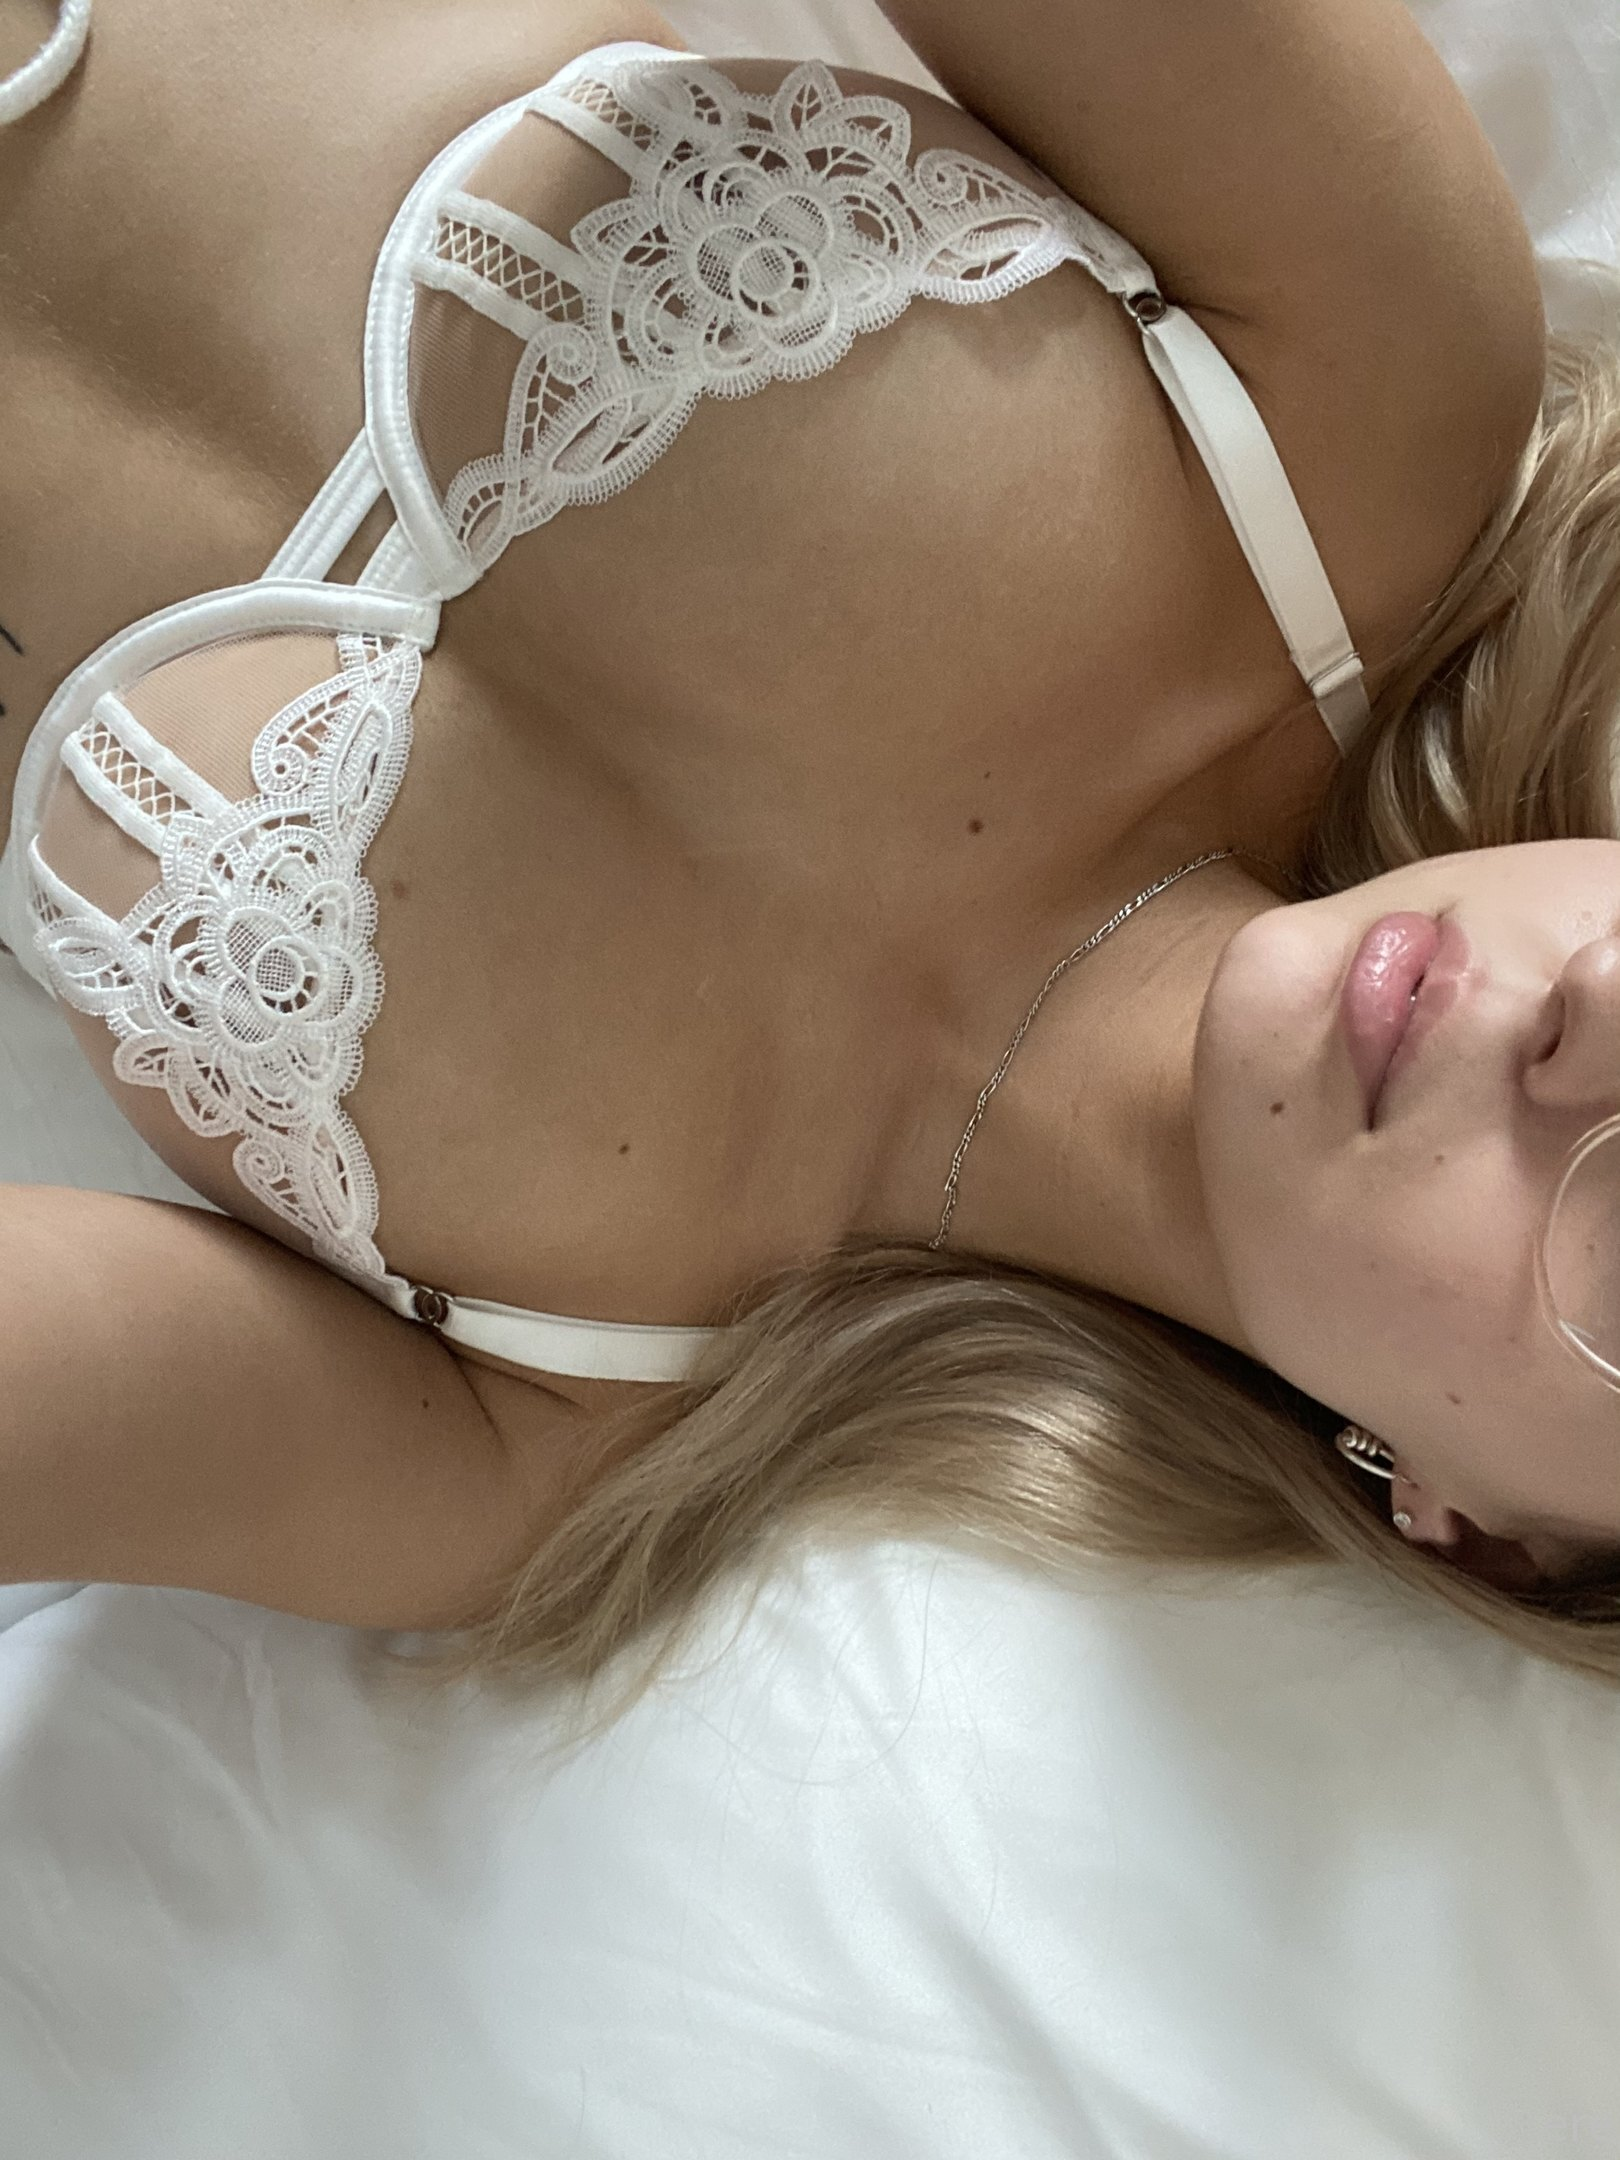 Lilith Cavaliere, Lilithcavalierex, Onlyfans 0013